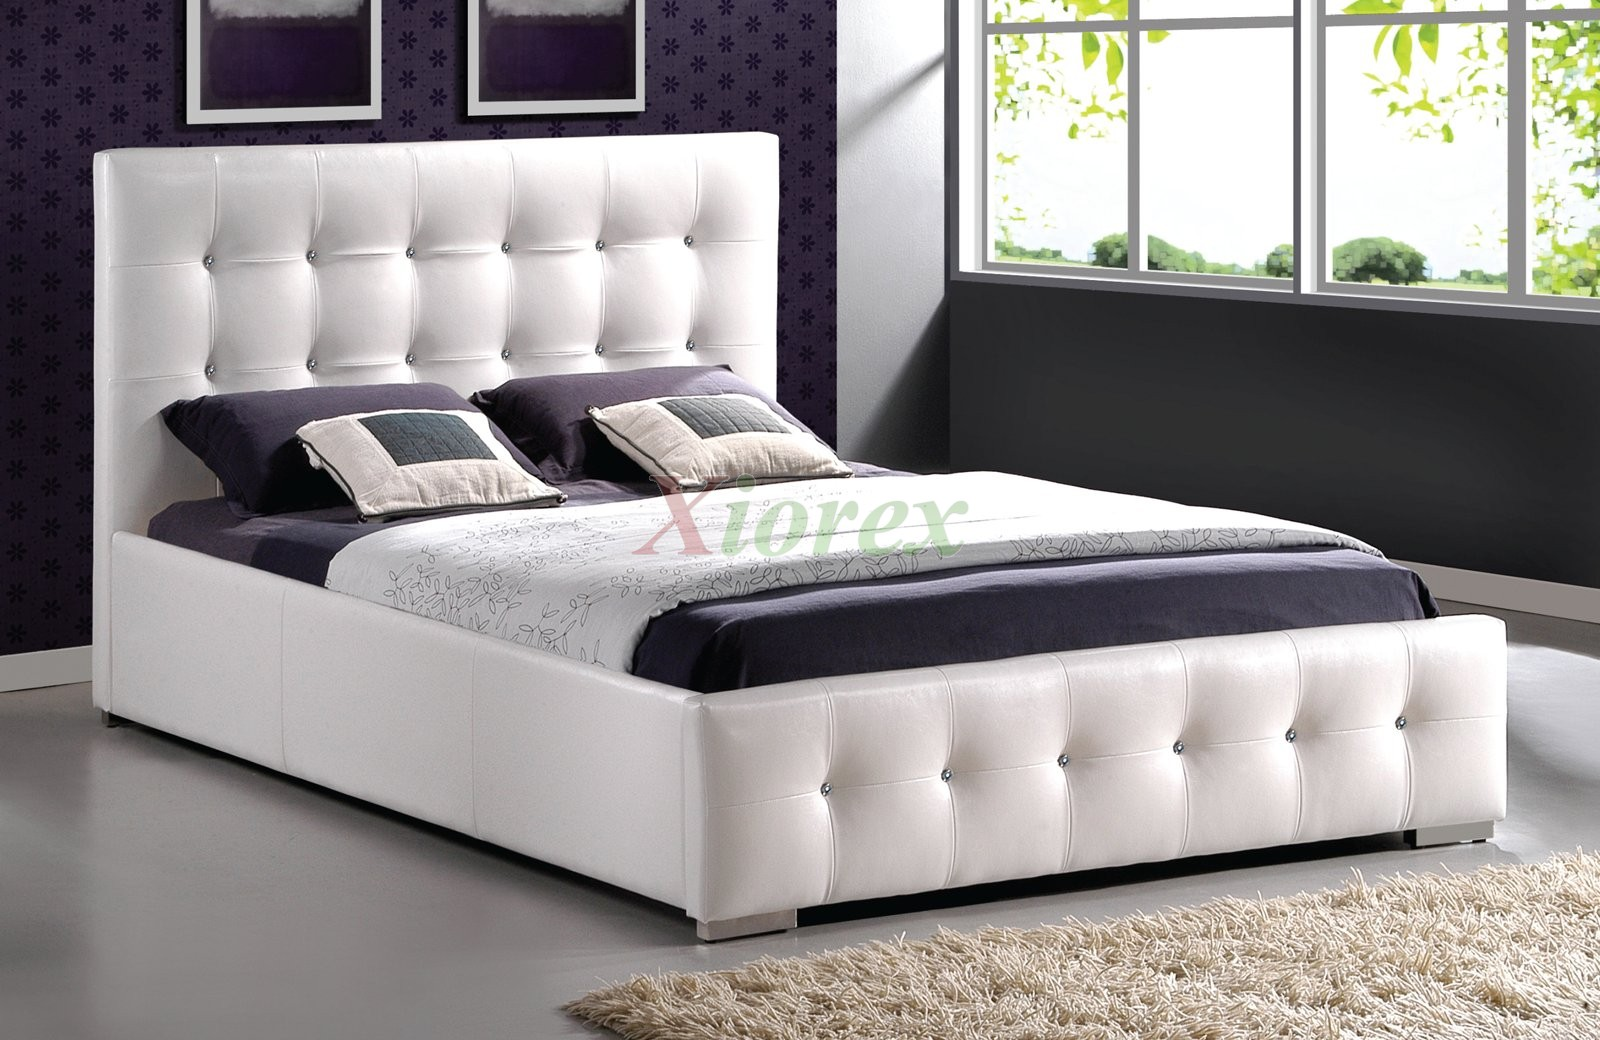 upholstered tufted platform bed furniture   xiorex - upholstered tufted platform bed furniture   xiorex upholstered tufted platformbed furniture   xiorexnot available in the us